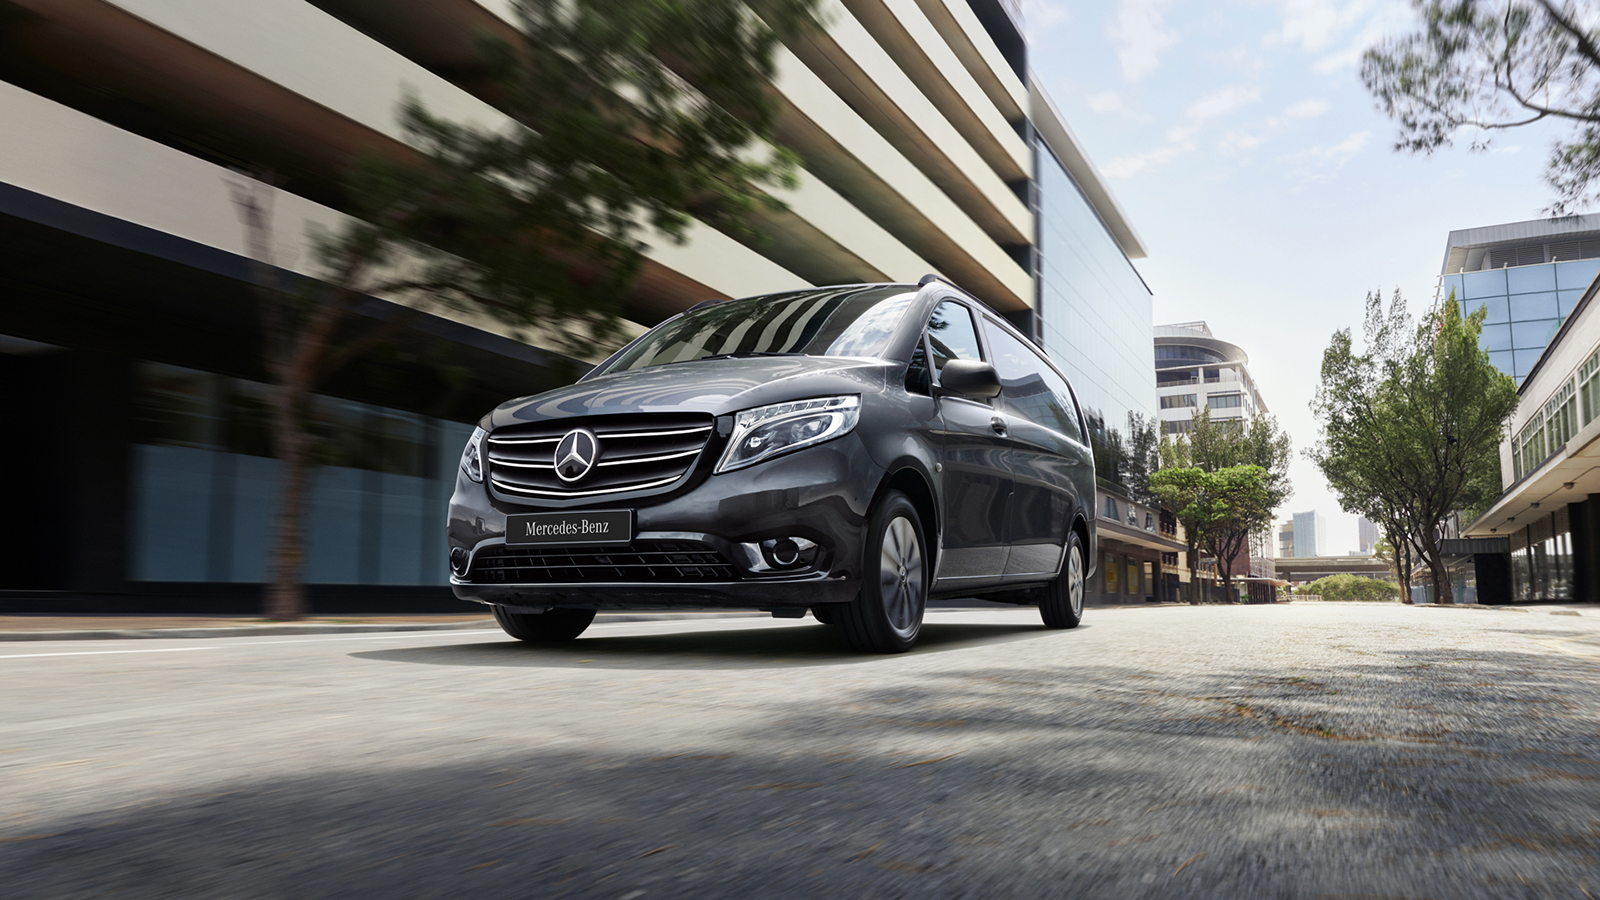 Pricing and Specification Announced for Evolved Mercedes-Benz Vito